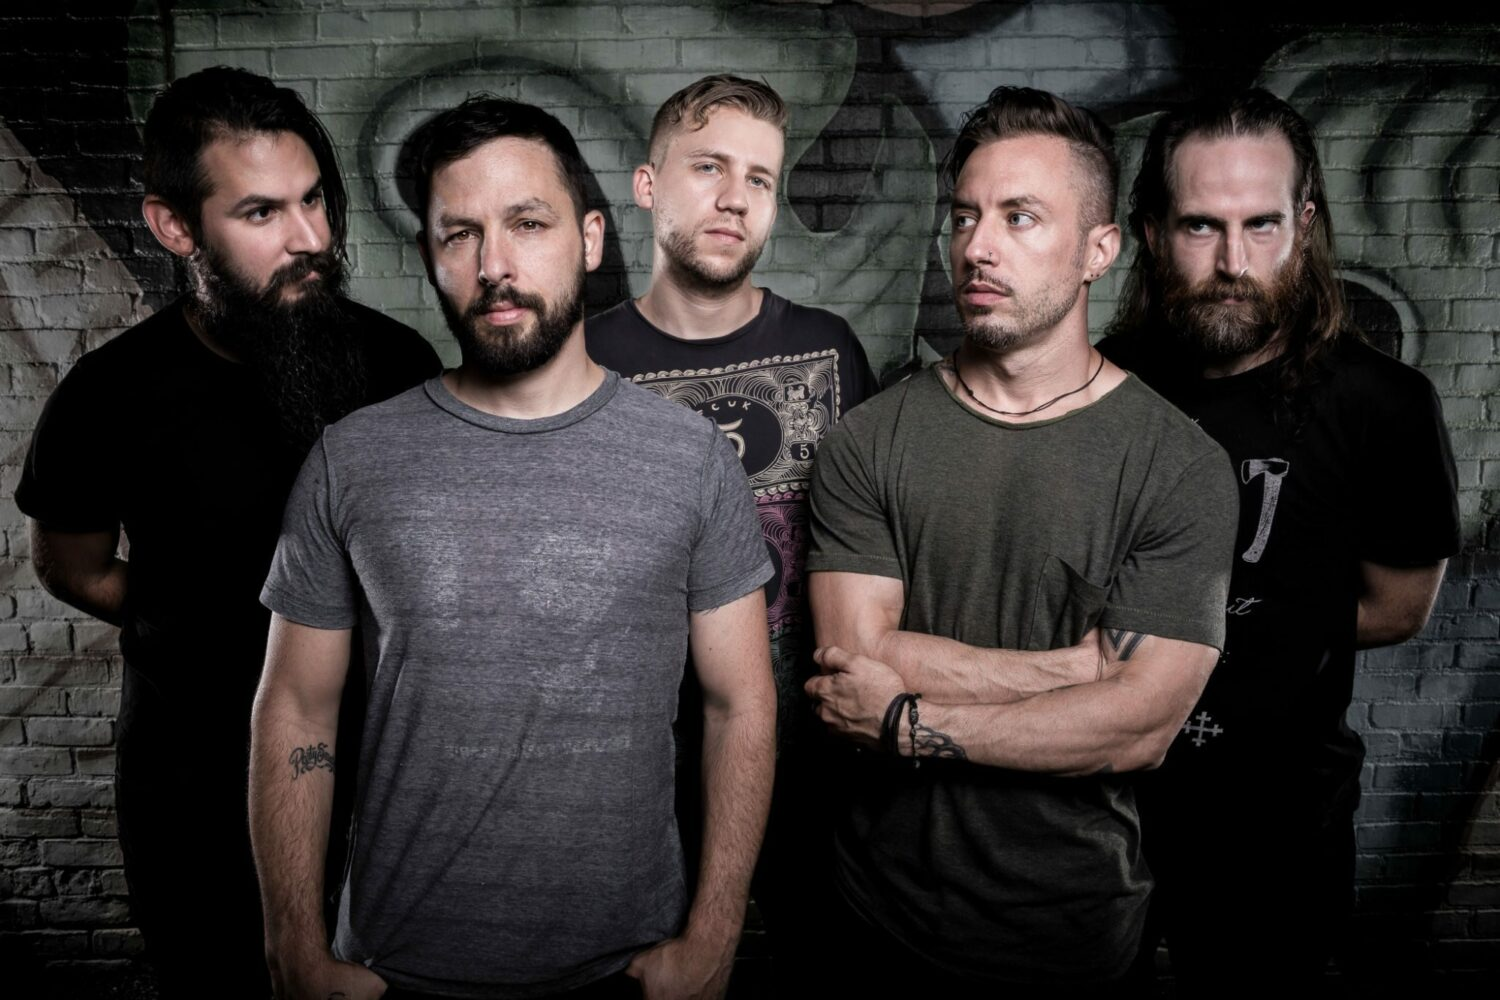 Escape Artists Never Die: The Dillinger Escape Plan